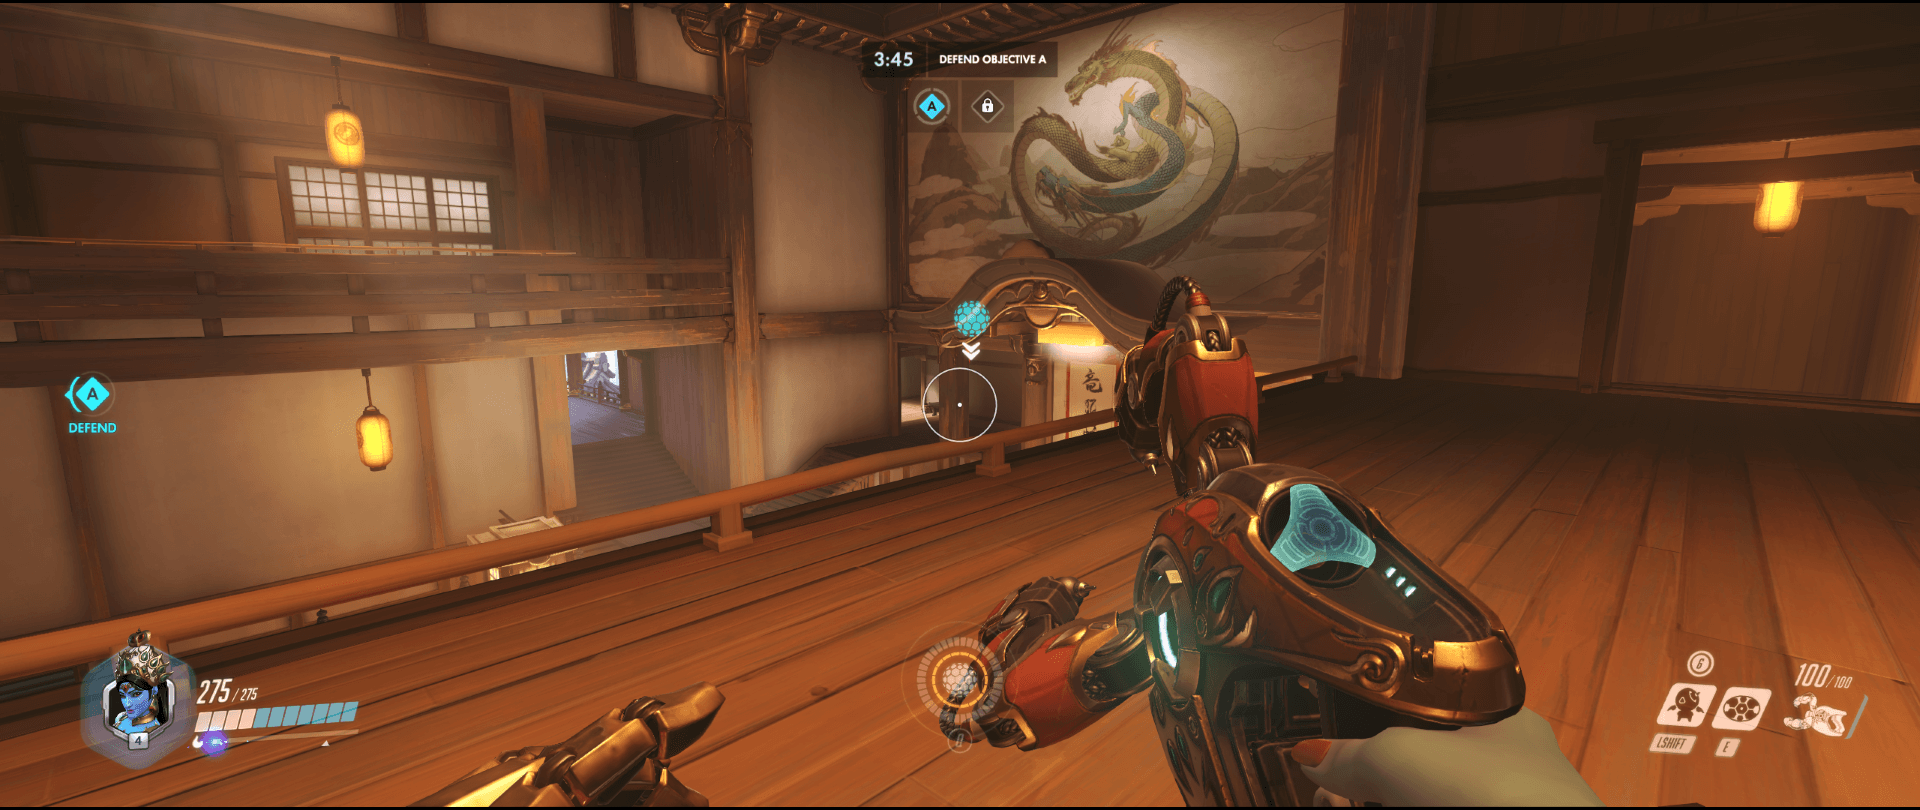 Symmetra Shield Generator spot Hanamura main range 2 point two.png